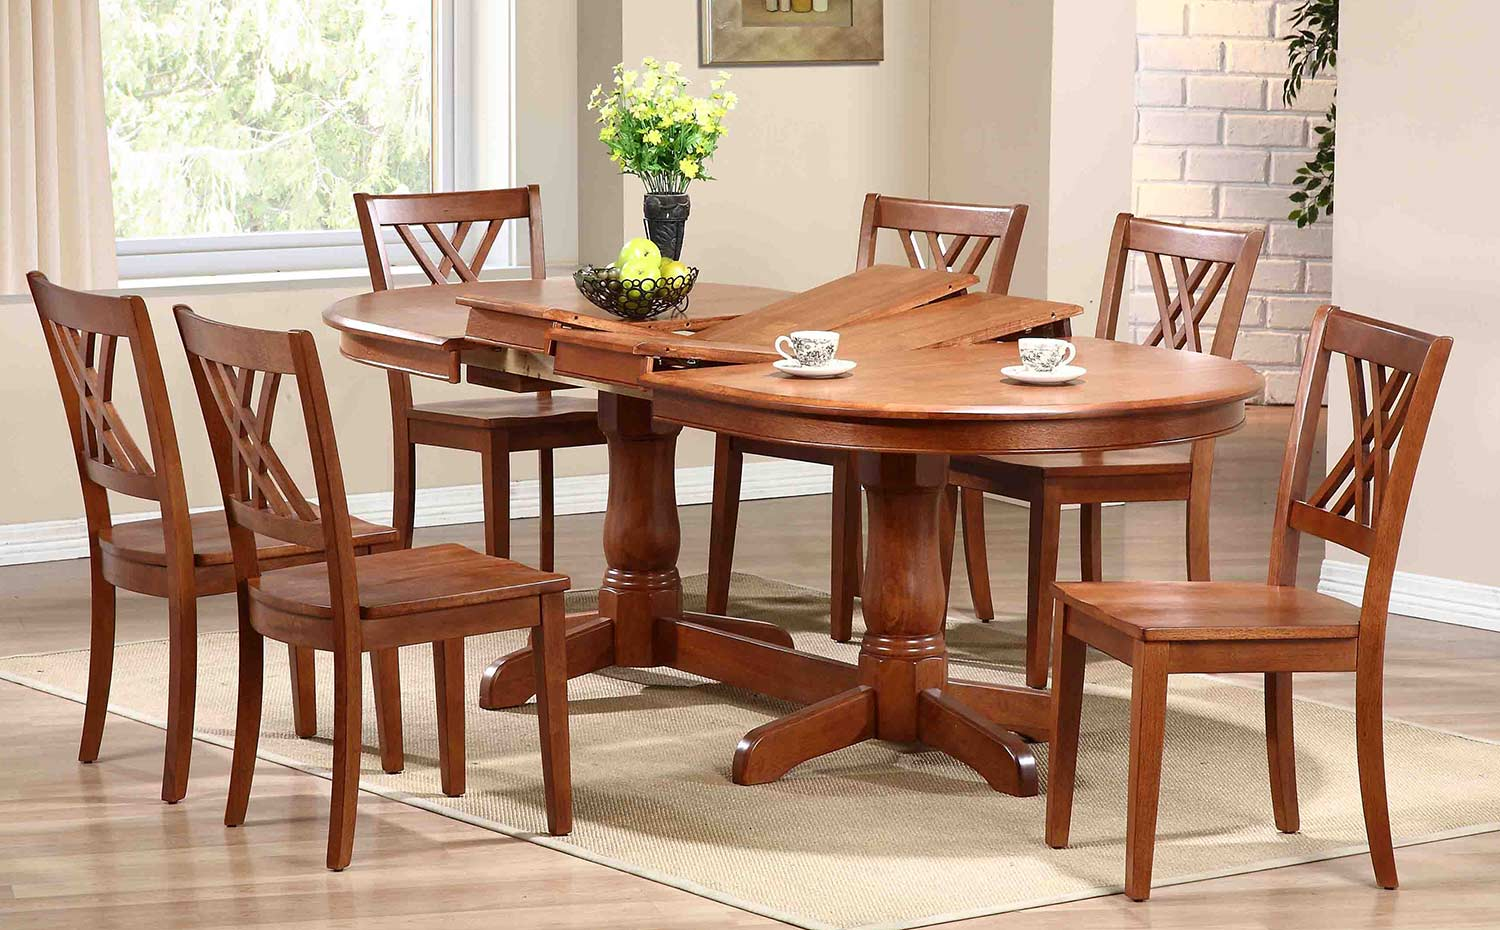 Iconic Furniture Oval Double Pedestal Dining Set With